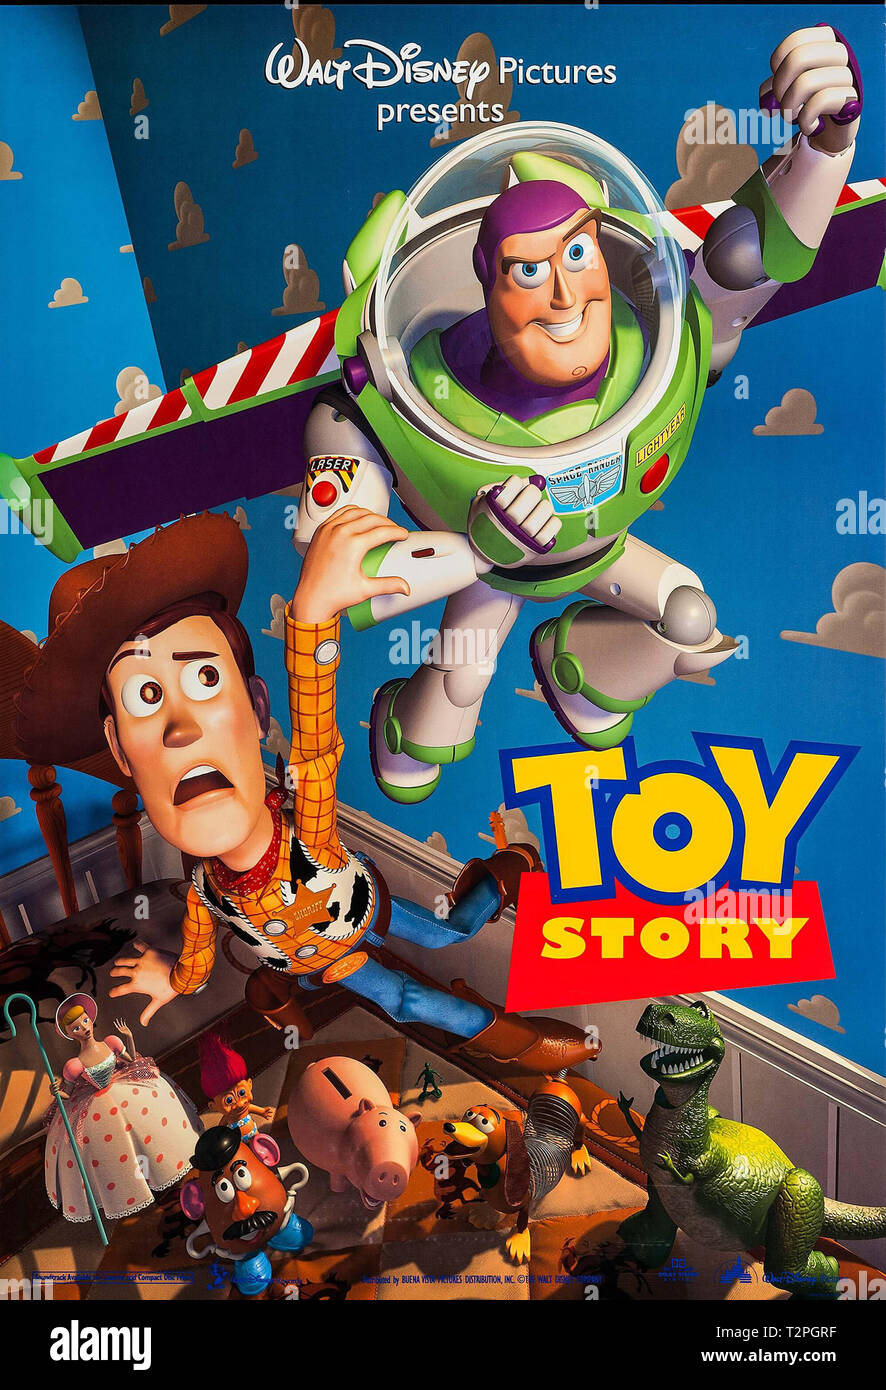 Toy Story (Buena Vista, 1995)  Poster  File Reference # 33751_972THA - Stock Image